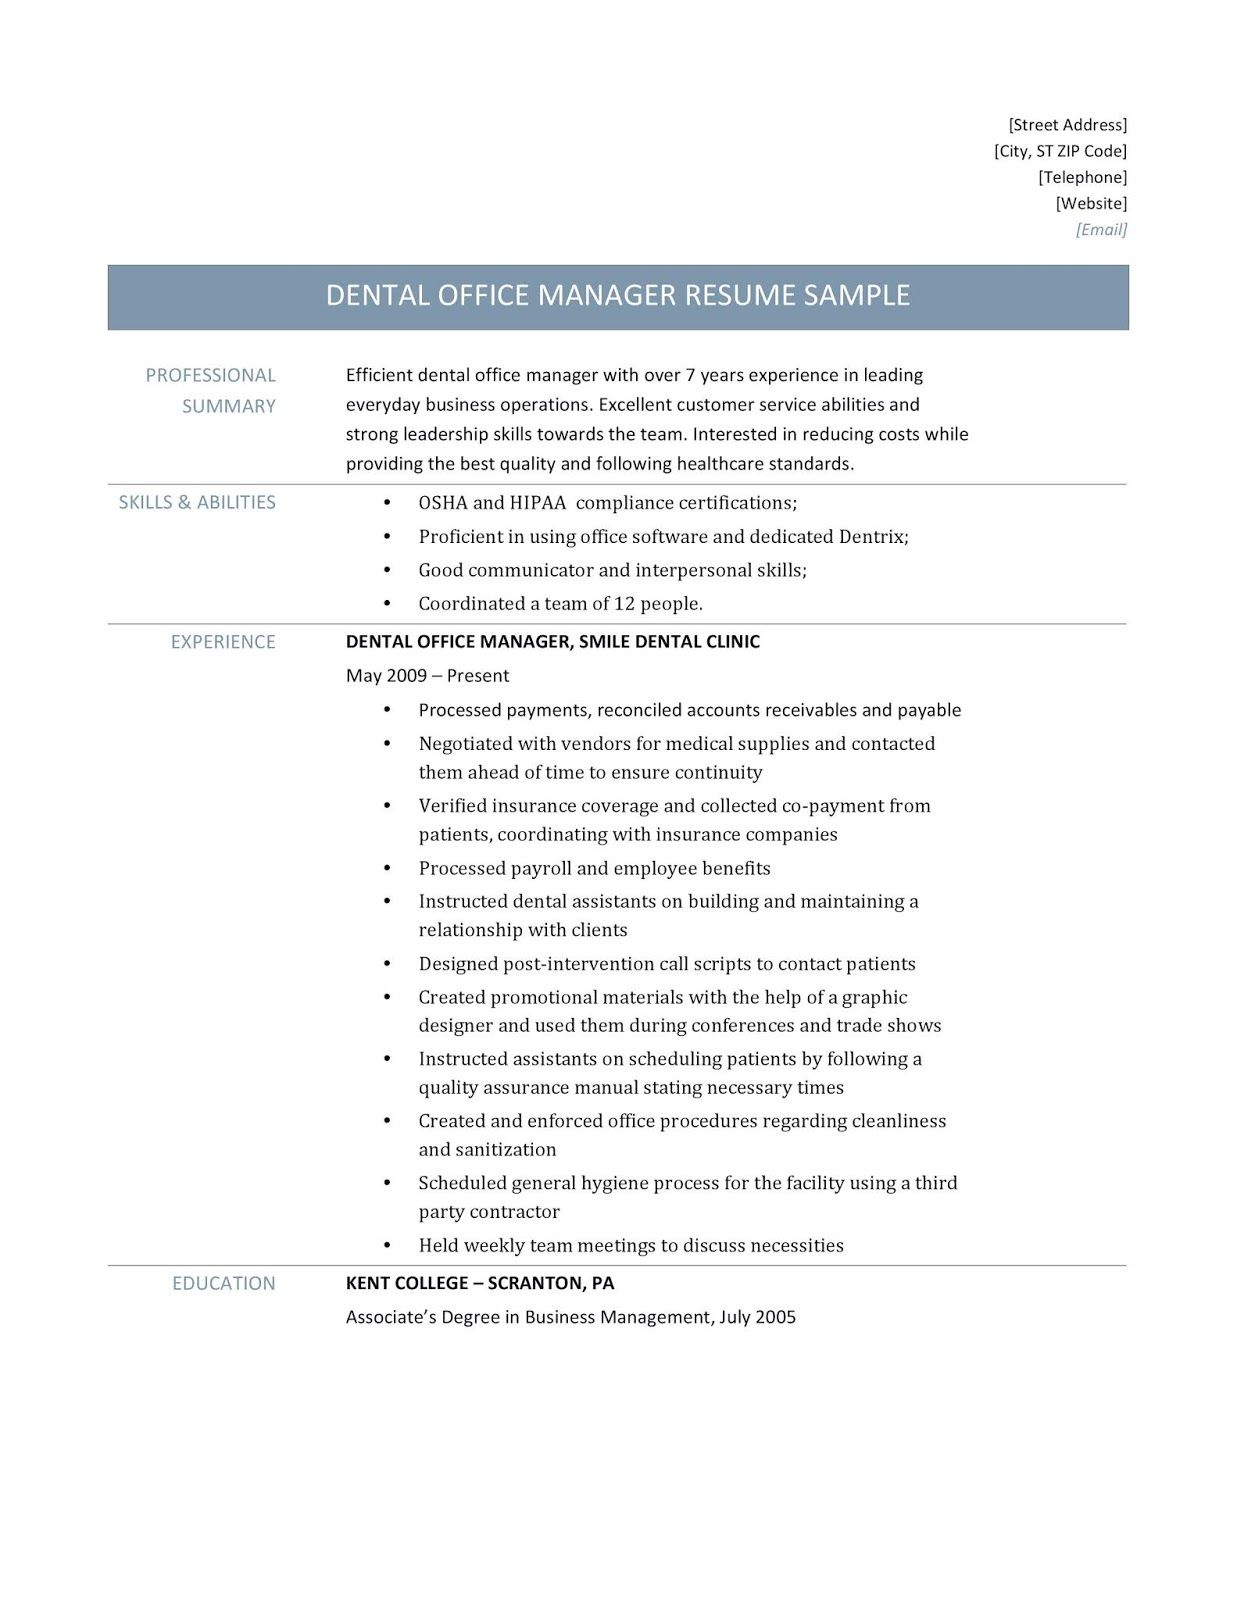 Dental Office Manager Resume Samples By Online Resume